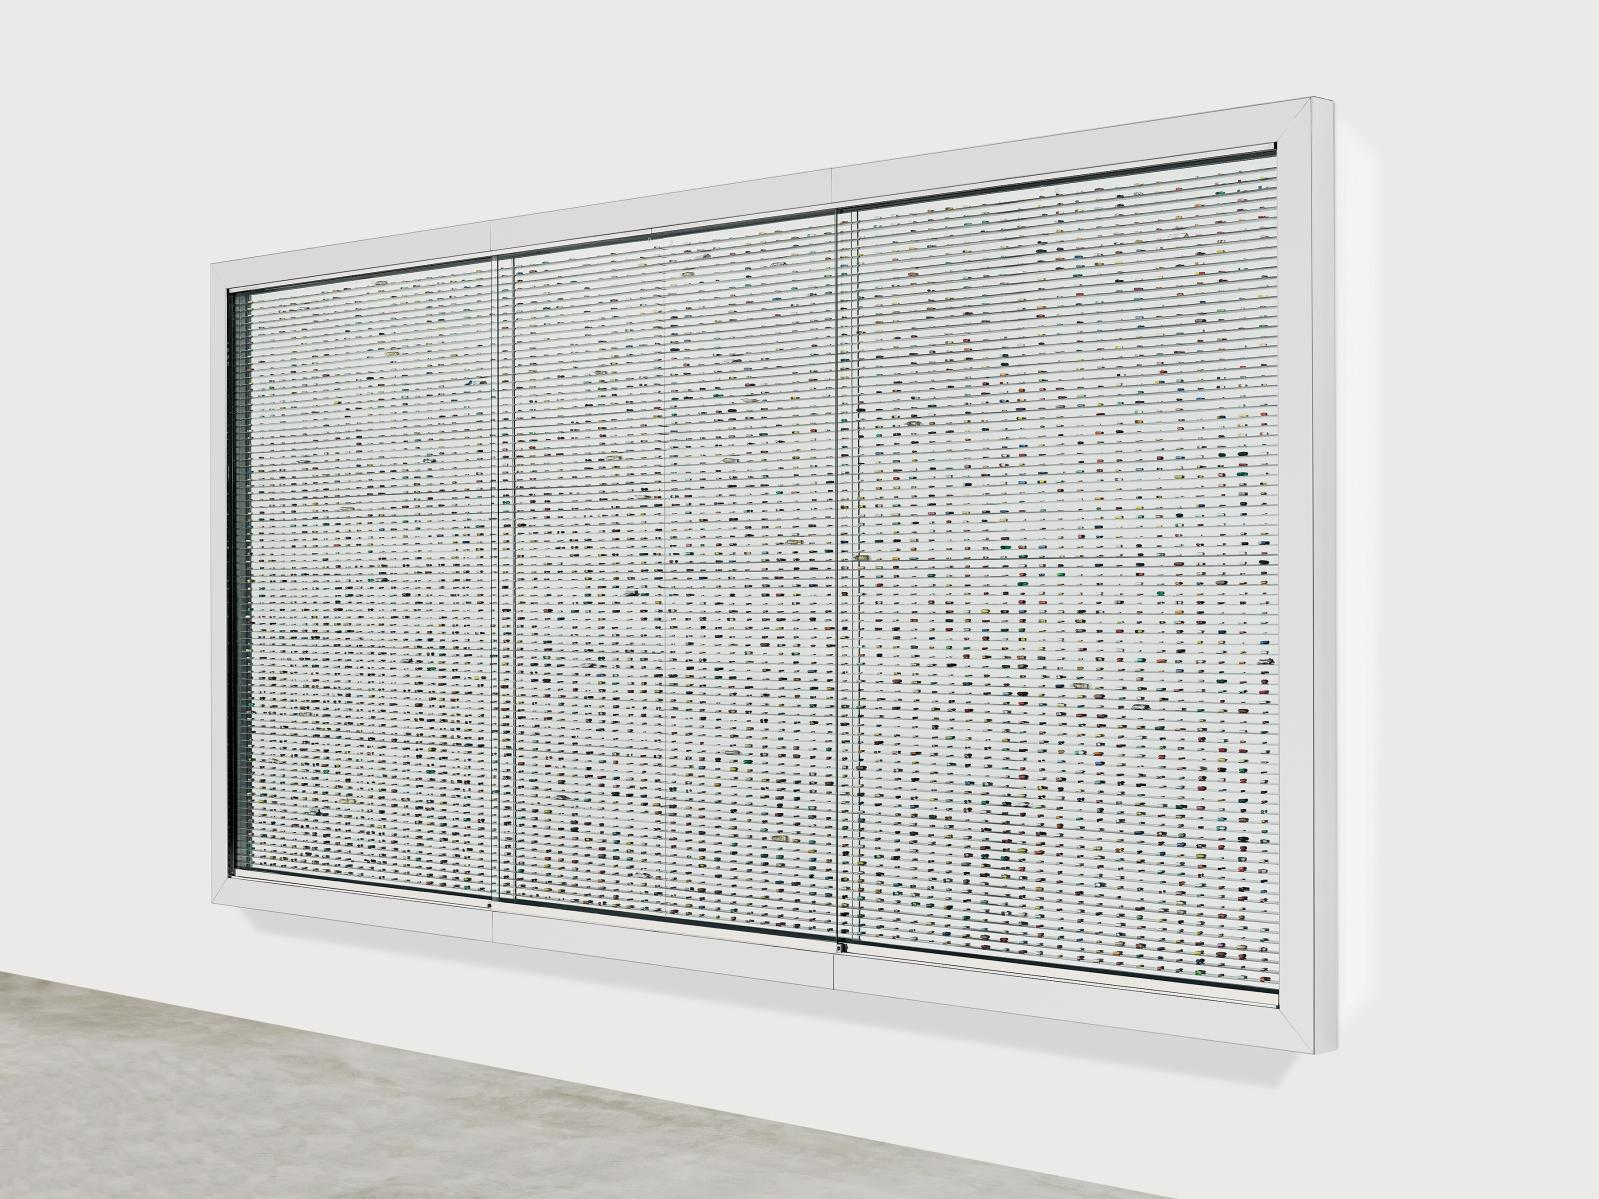 Damien Hirst (né en 1965), The Void, 2000, 235,9 x 470,9 x 10,8 cm. ©DAMIEN HIRST AND SCIENCE LTD.ALL RIGHTS RESERVED, ADAGP, PARIS, 2017